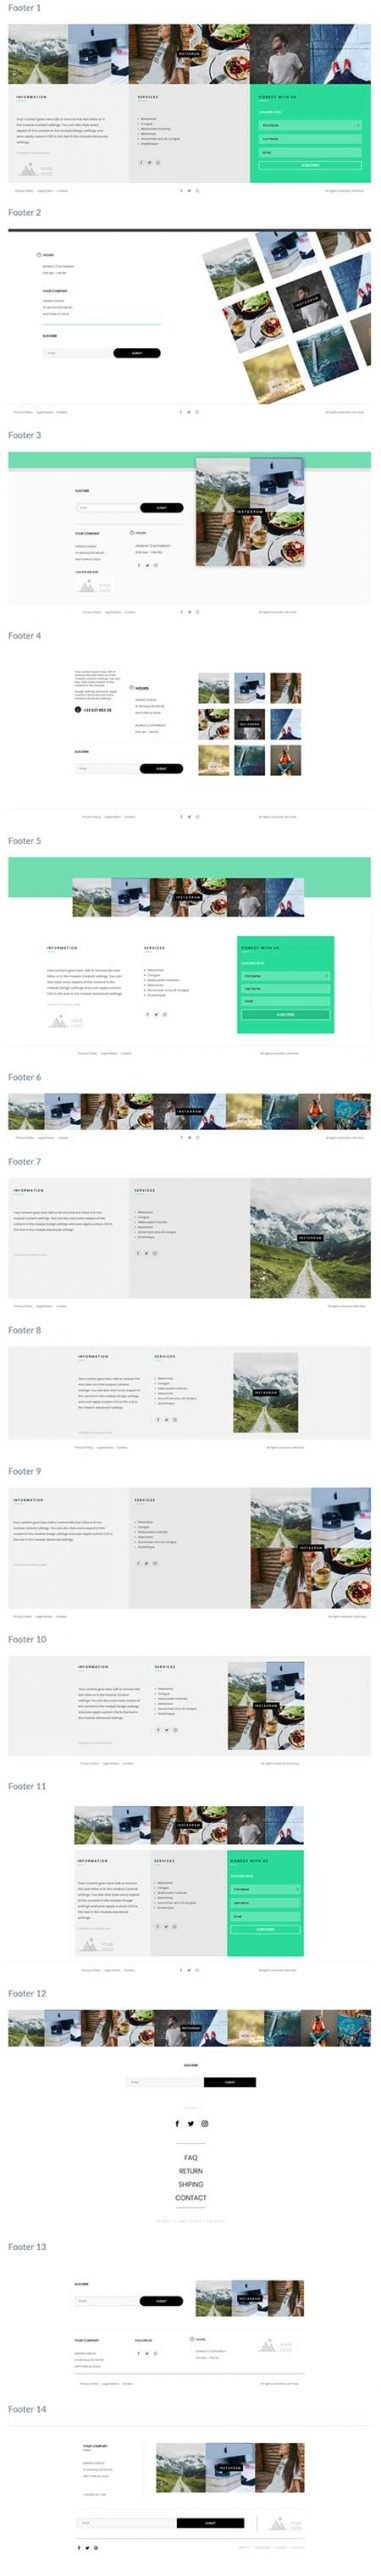 Divi Instagram footers